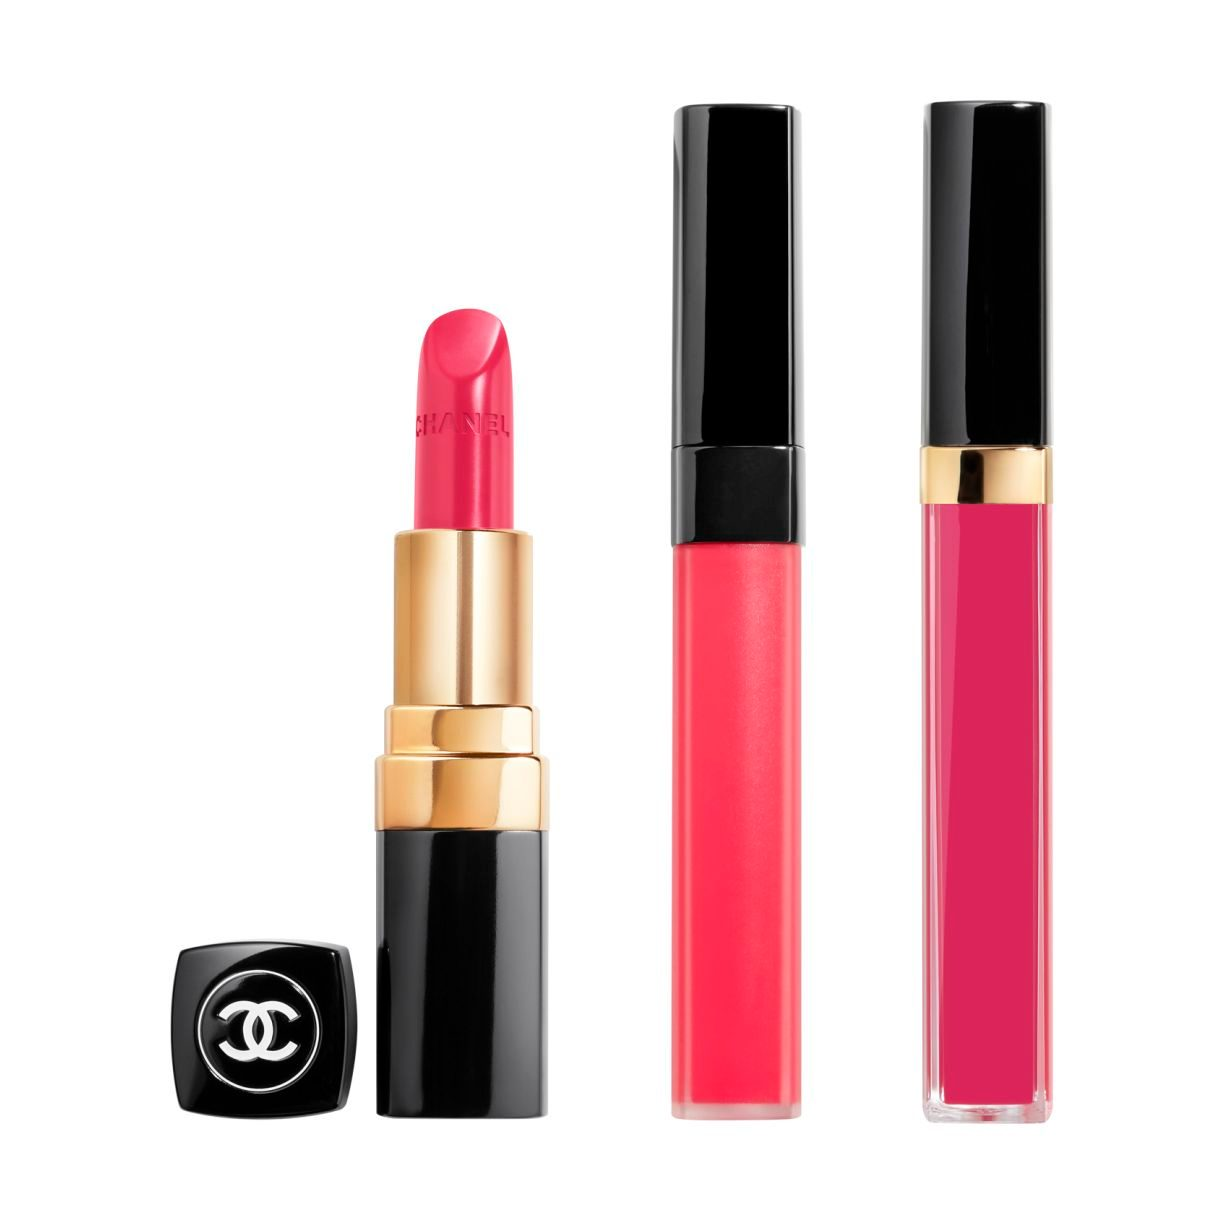 ROUGE COCO LIP BLUSH, ROUGE COCO GLOSS ET ROUGE COCO Trio Rouge Coco